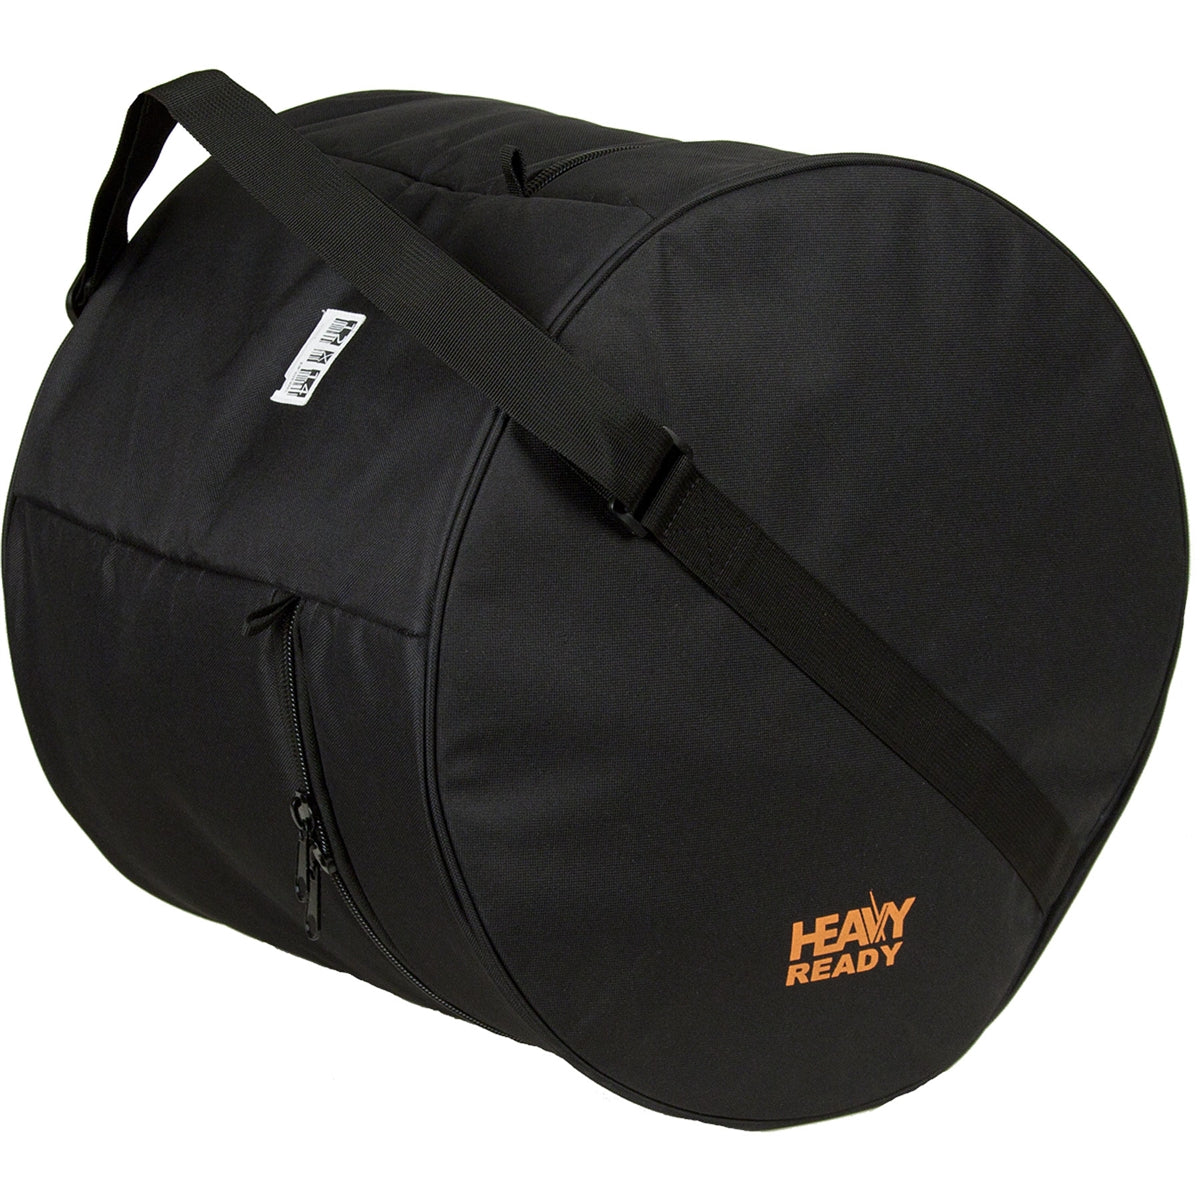 PROTEC Heavy Ready Padded  Tom Bag 14x12